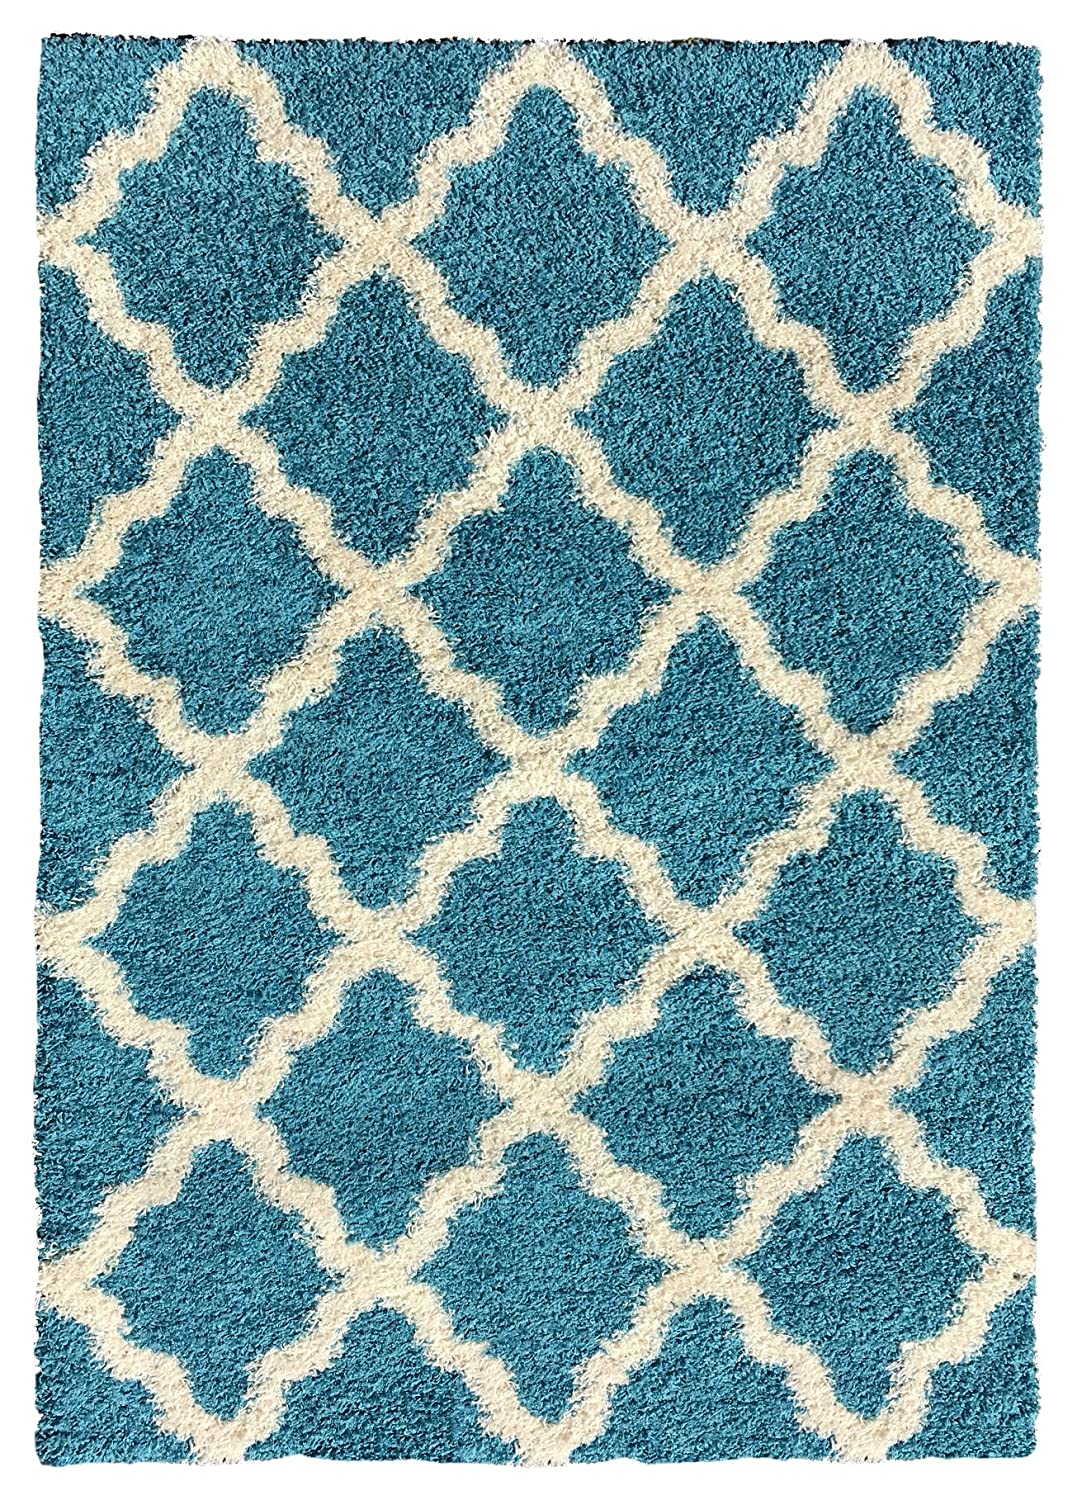 Amazon.com: Soft Shag Area Rug 5x7 Moroccan Trellis Turquoise Blue Shaggy  Rug   Contemporary Area Rugs For Living Room Bedroom Kitchen Decorative  Modern ...